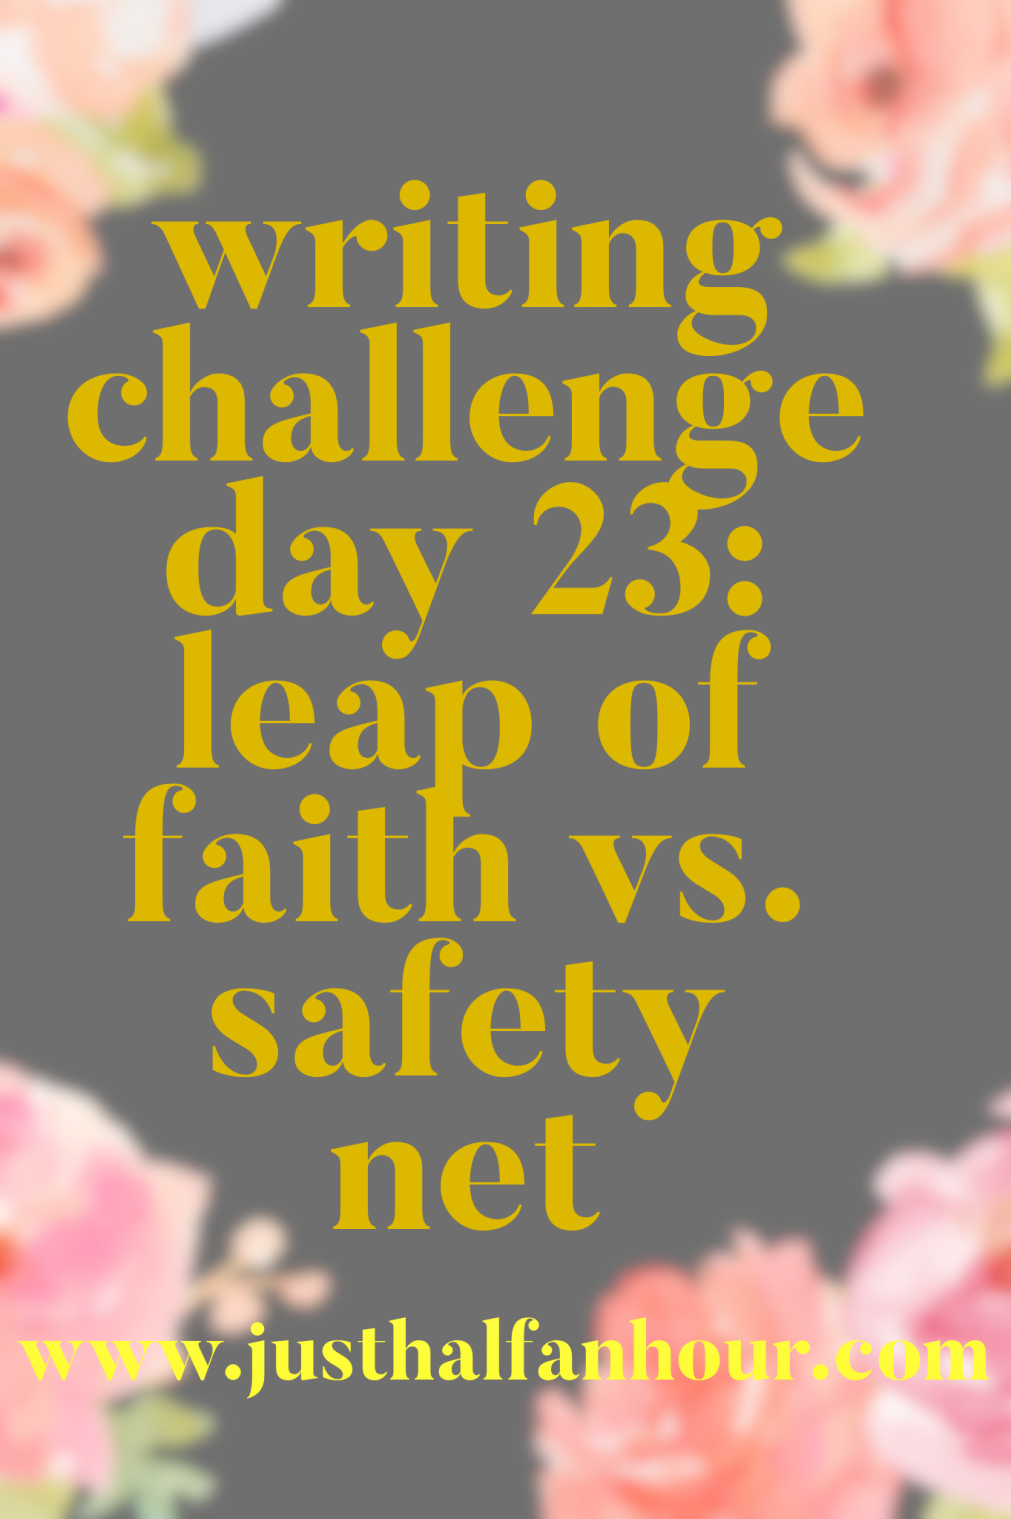 Writing Challenge Day 23: Leap Of Faith vs. Safety Net